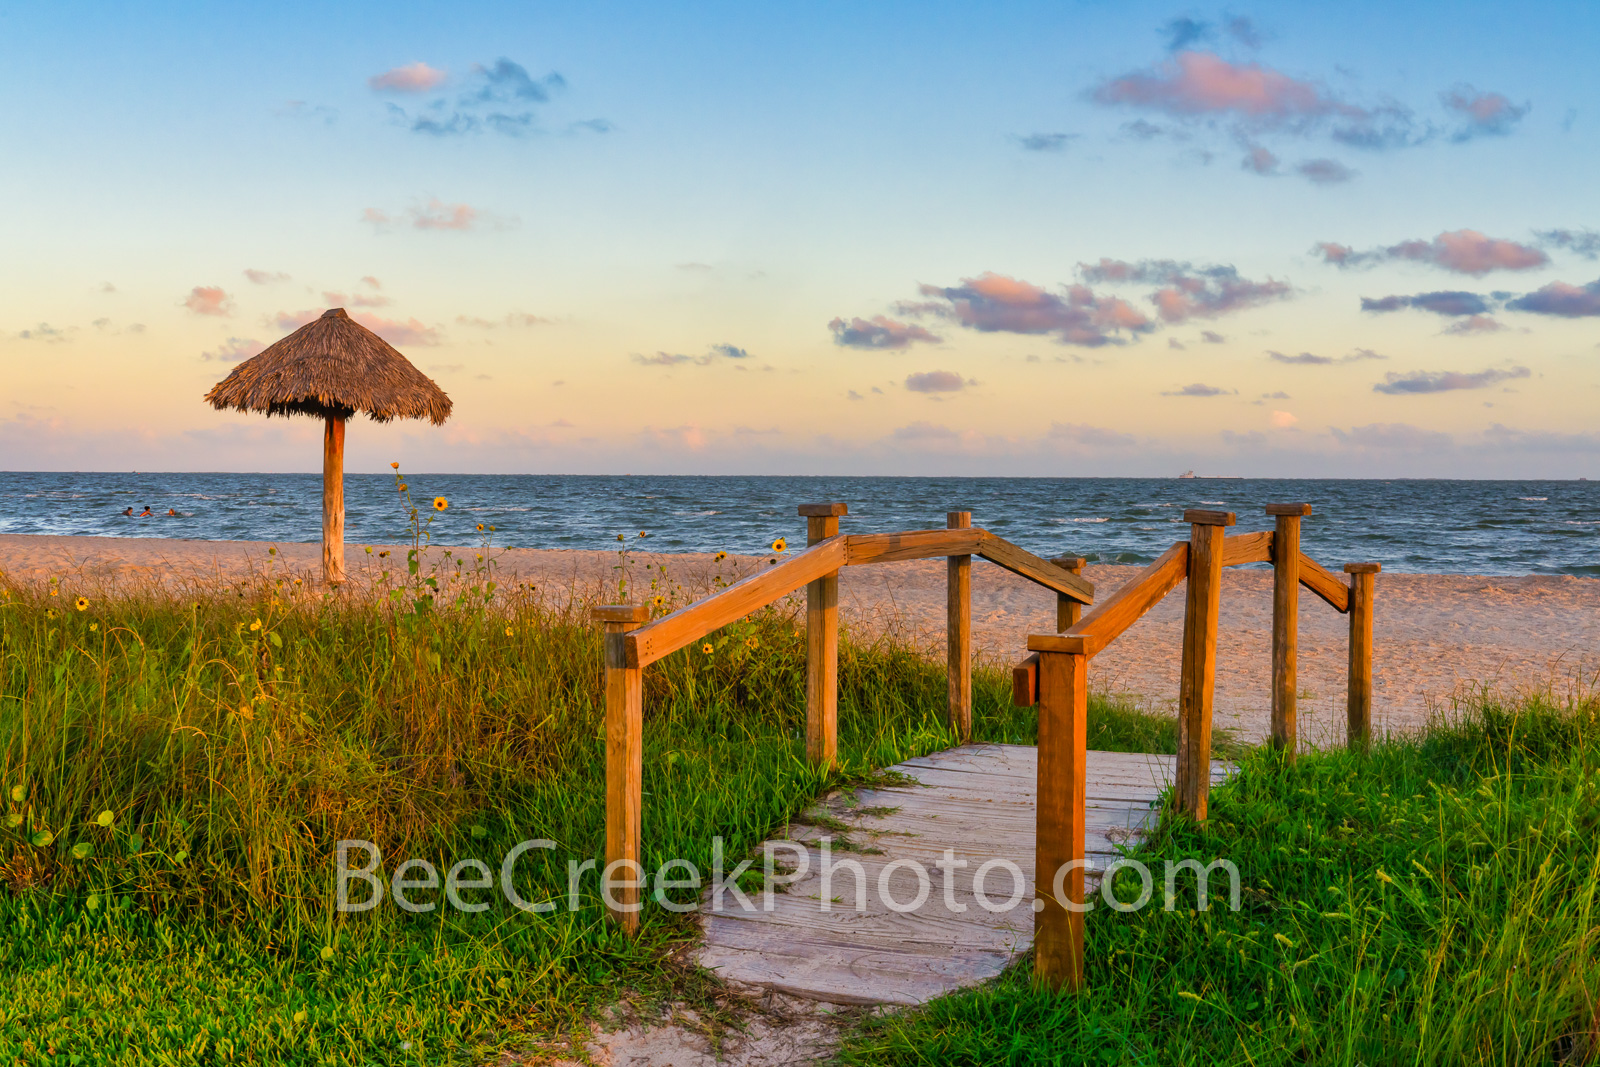 Rockport Beach Sunset - Texas Coast - This park is in Rockport Texas which is a lovely place to enjoy the beach and with this...